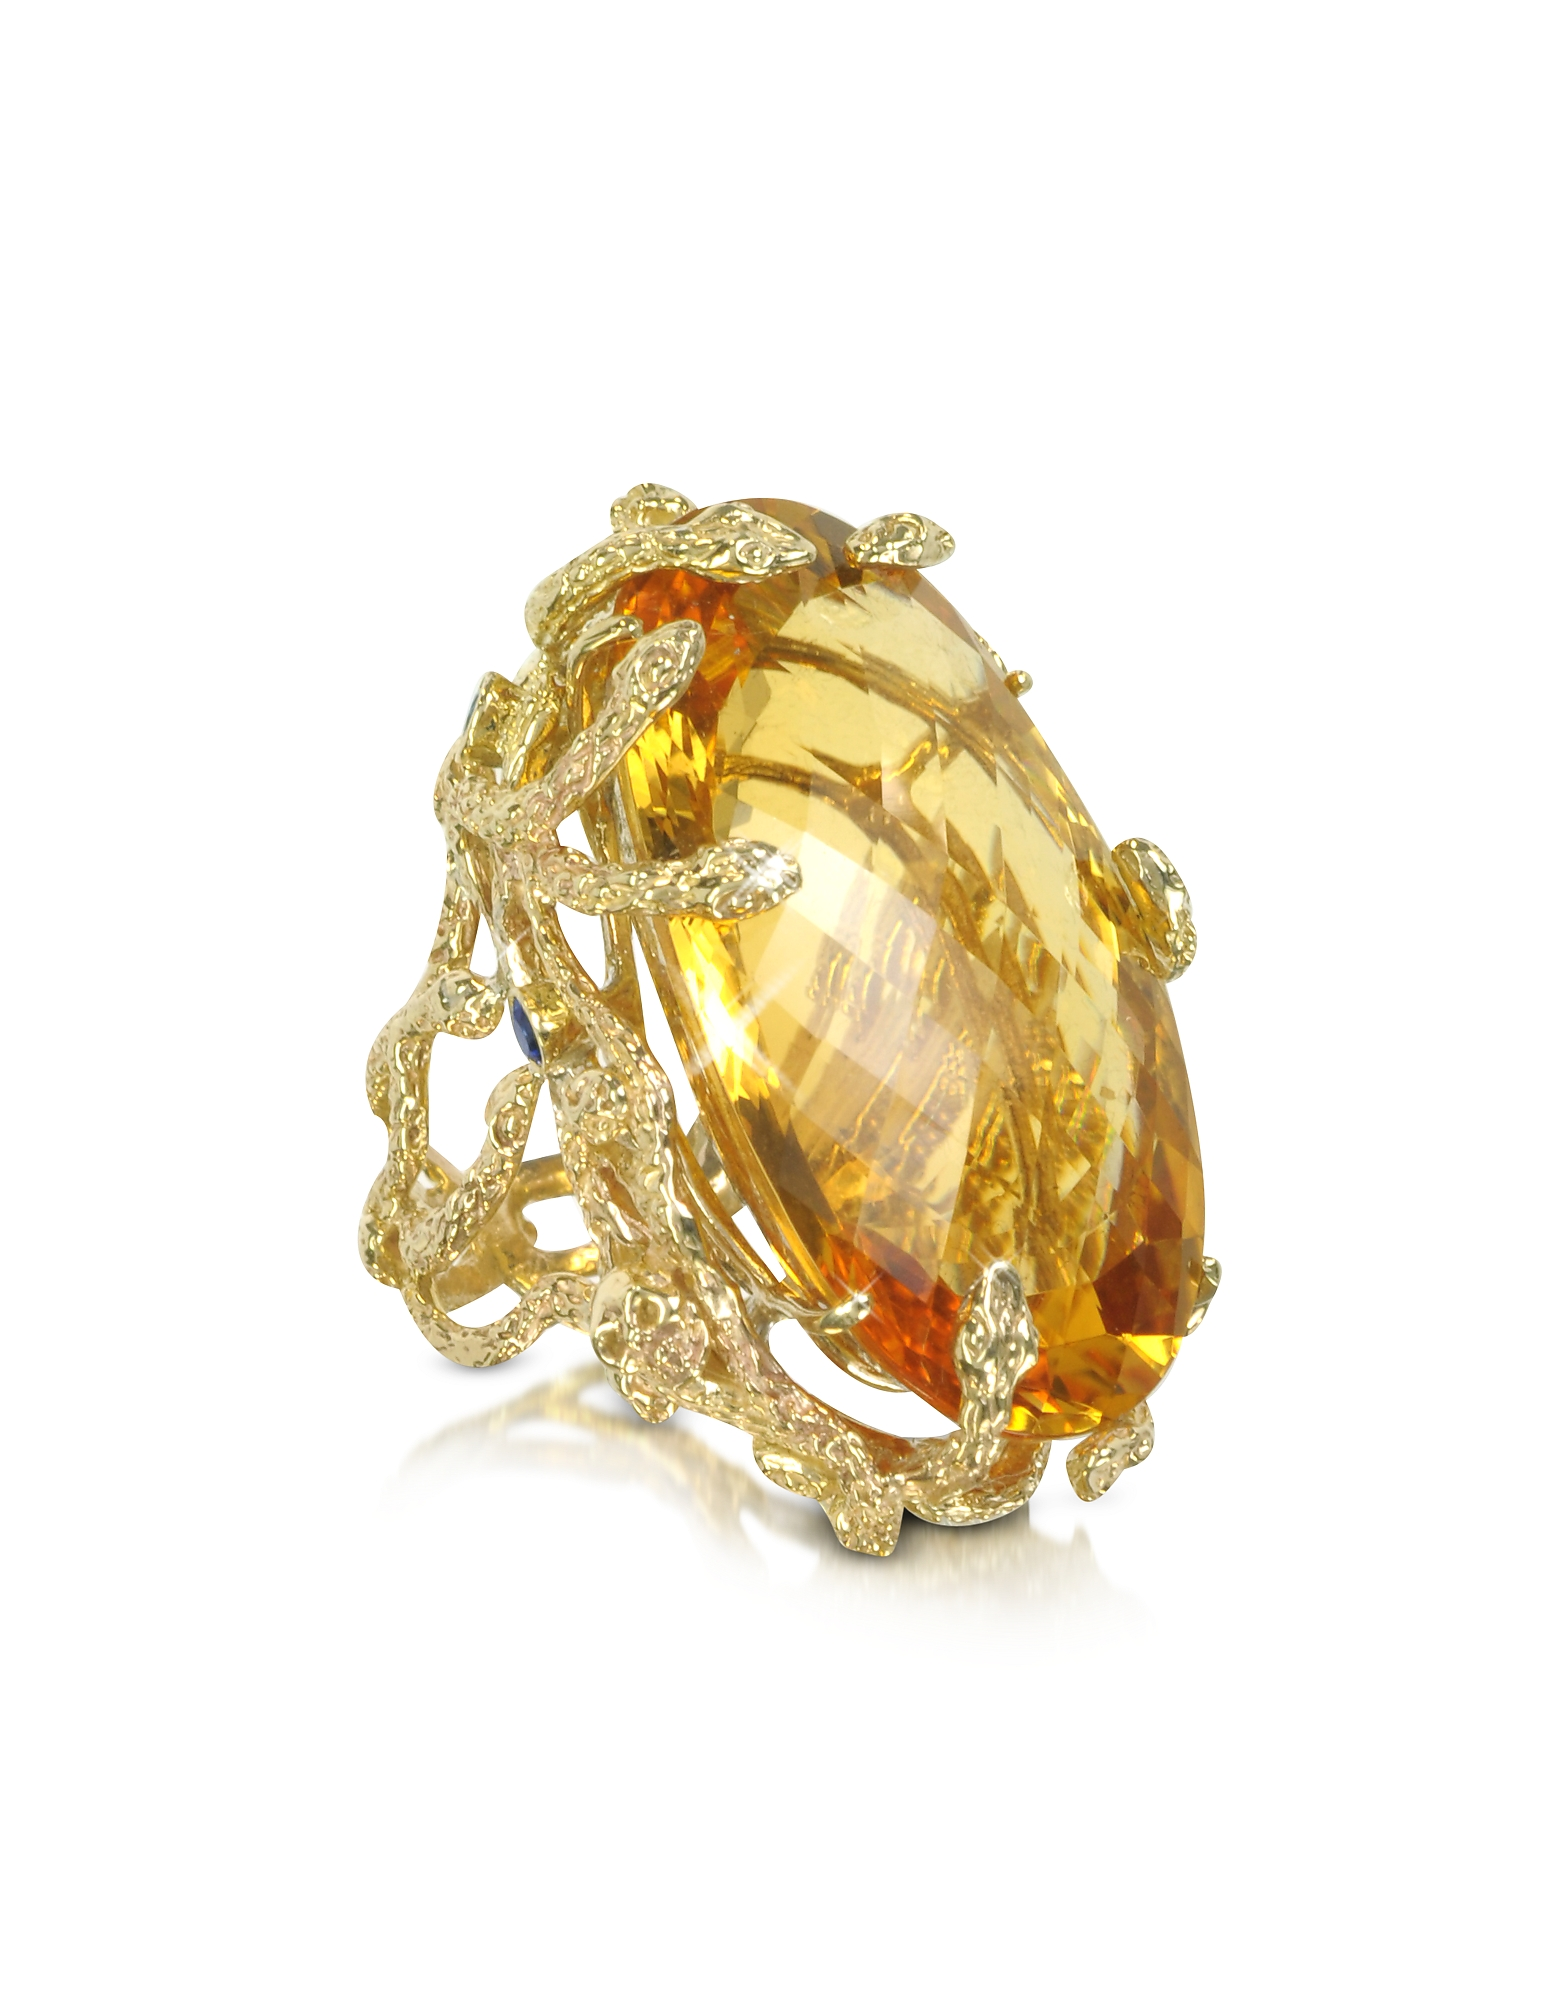 Bernard Delettrez Rings, Medusa Gold and Citrine Ring